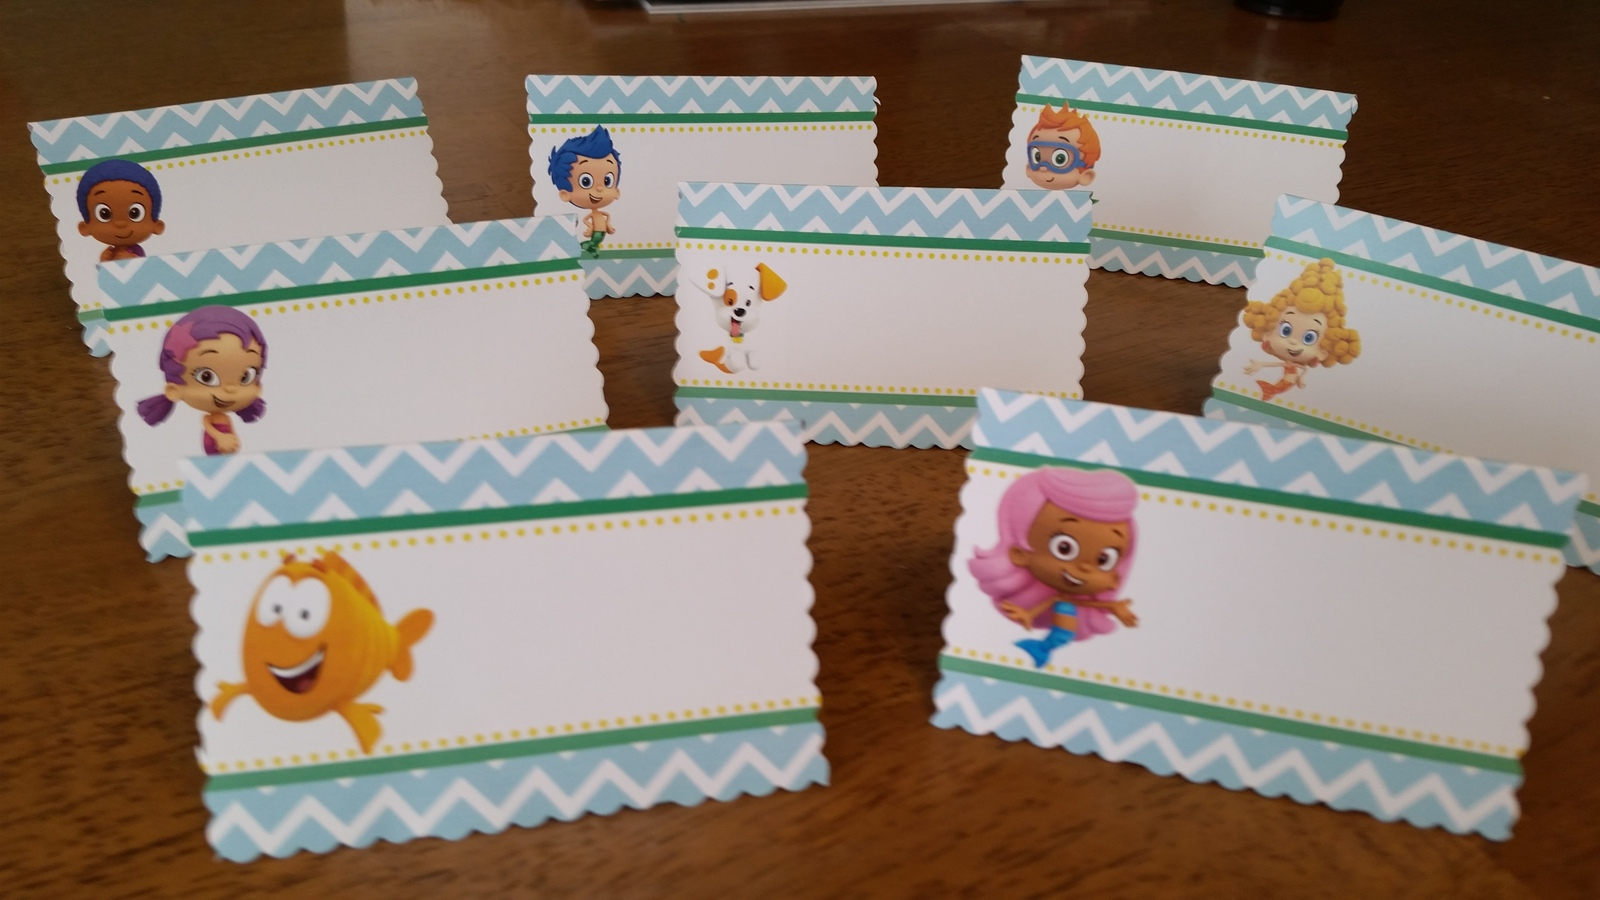 Bubble Guppies food tents for Birthday Party in aqua chevron